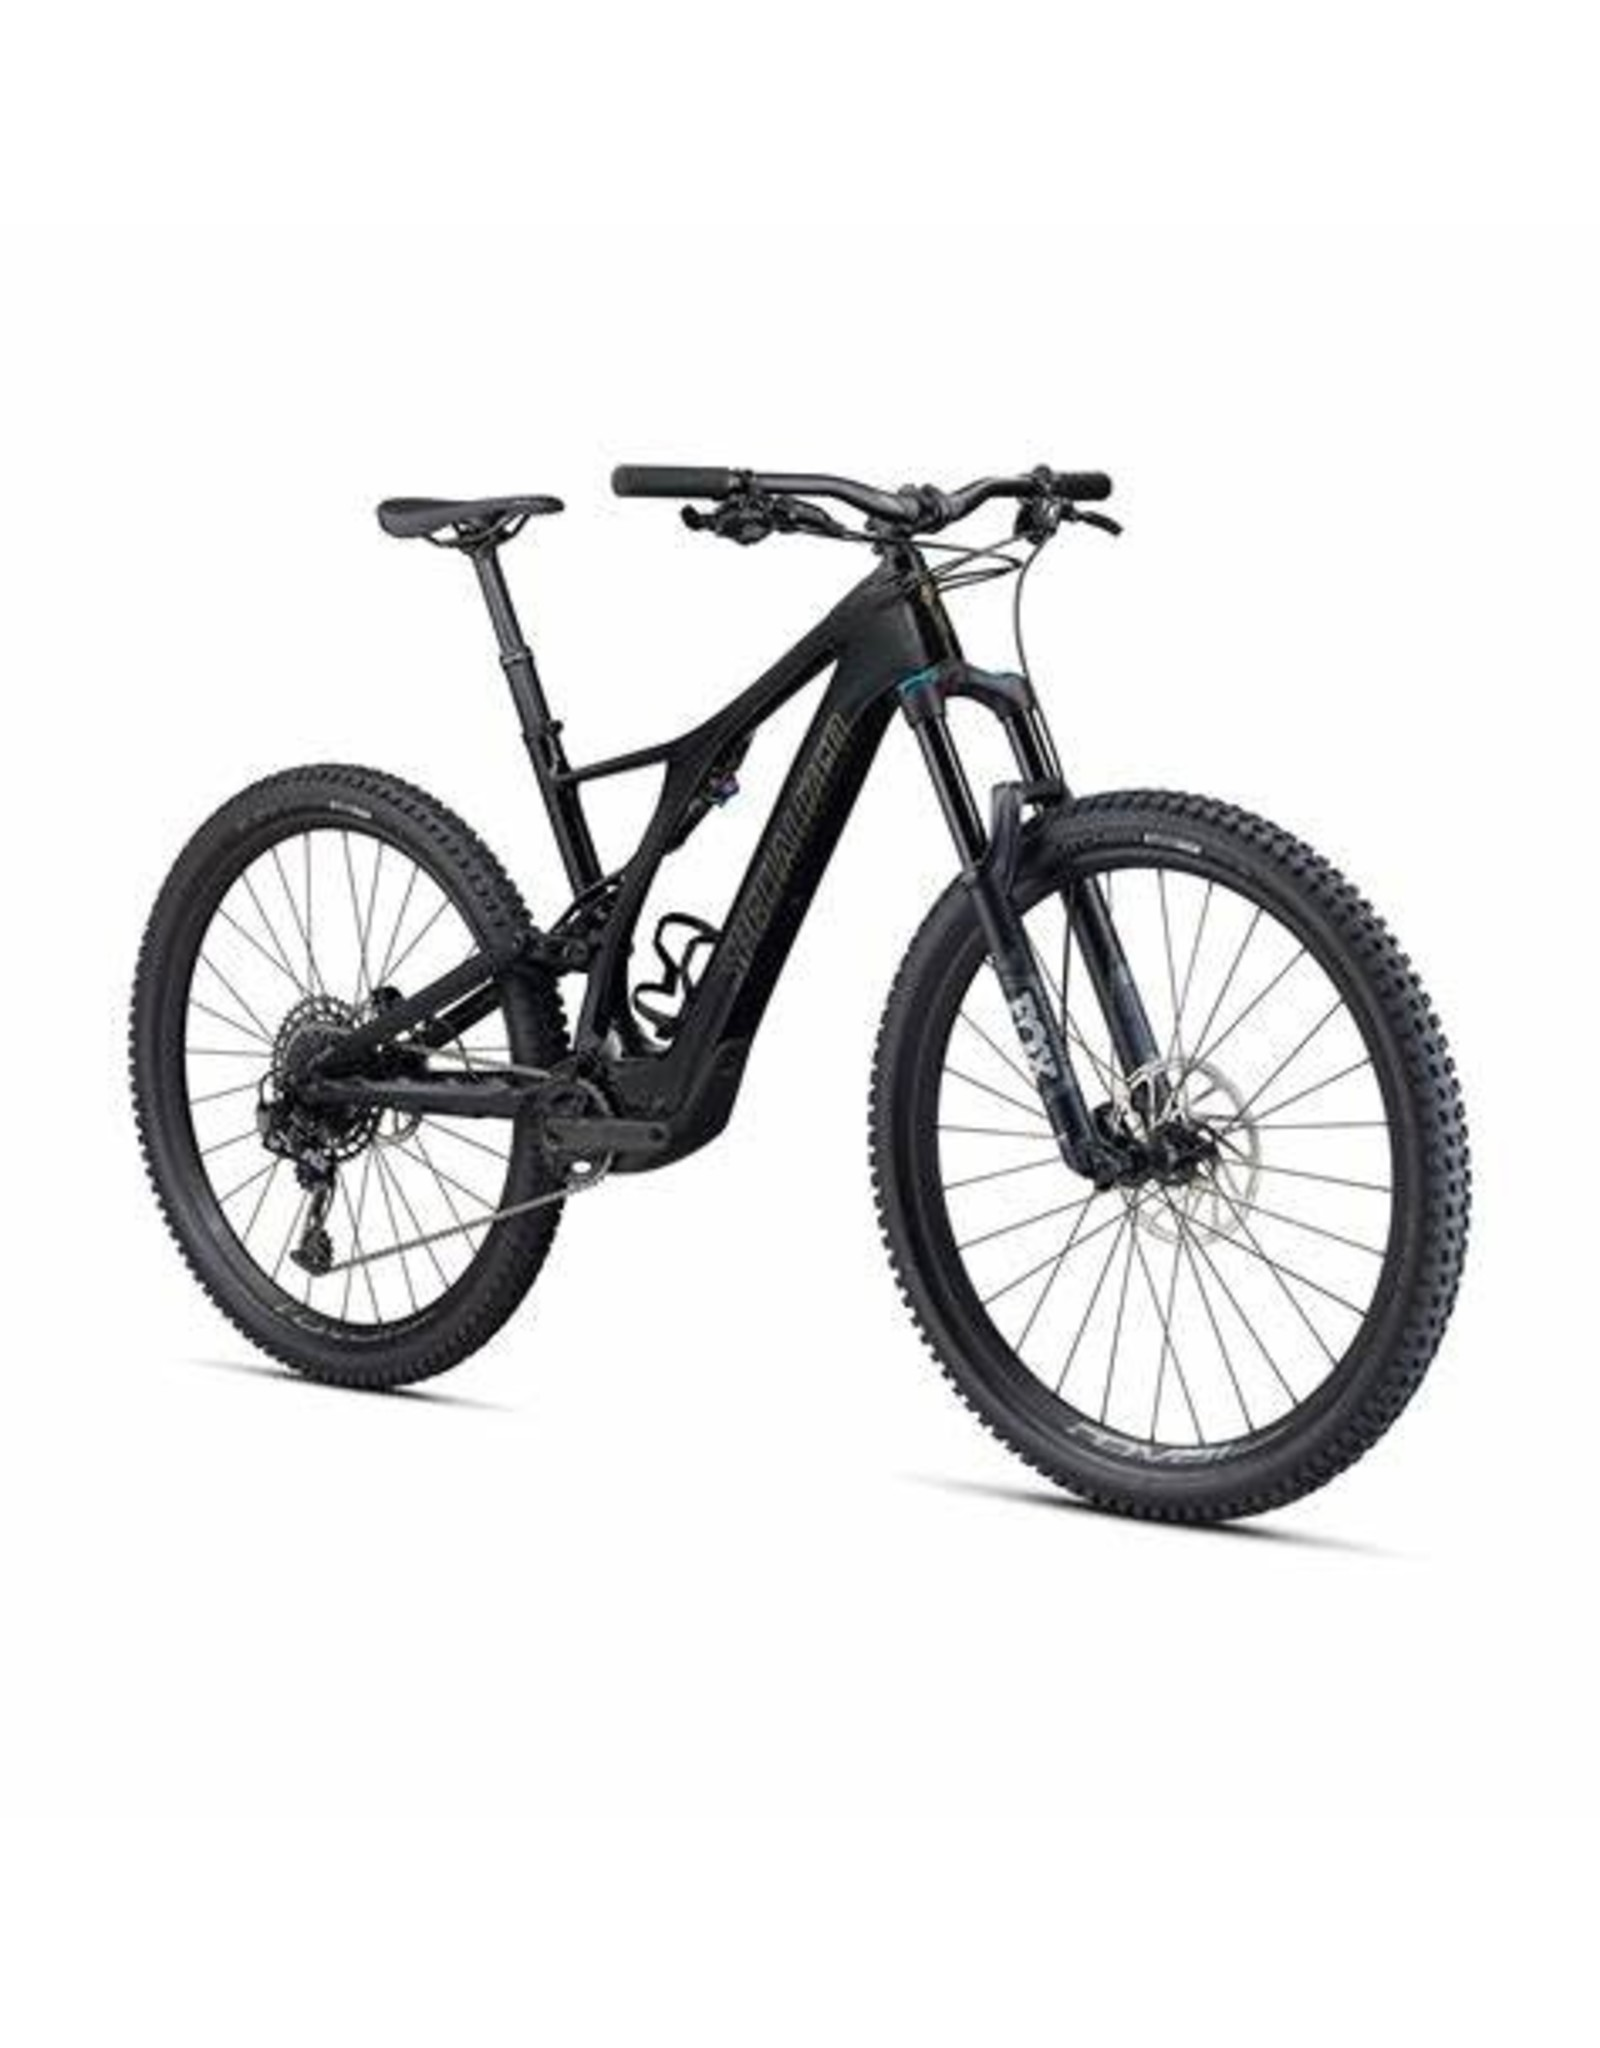 21 Spec Levo SL Comp Carbon Blk/Gun Large